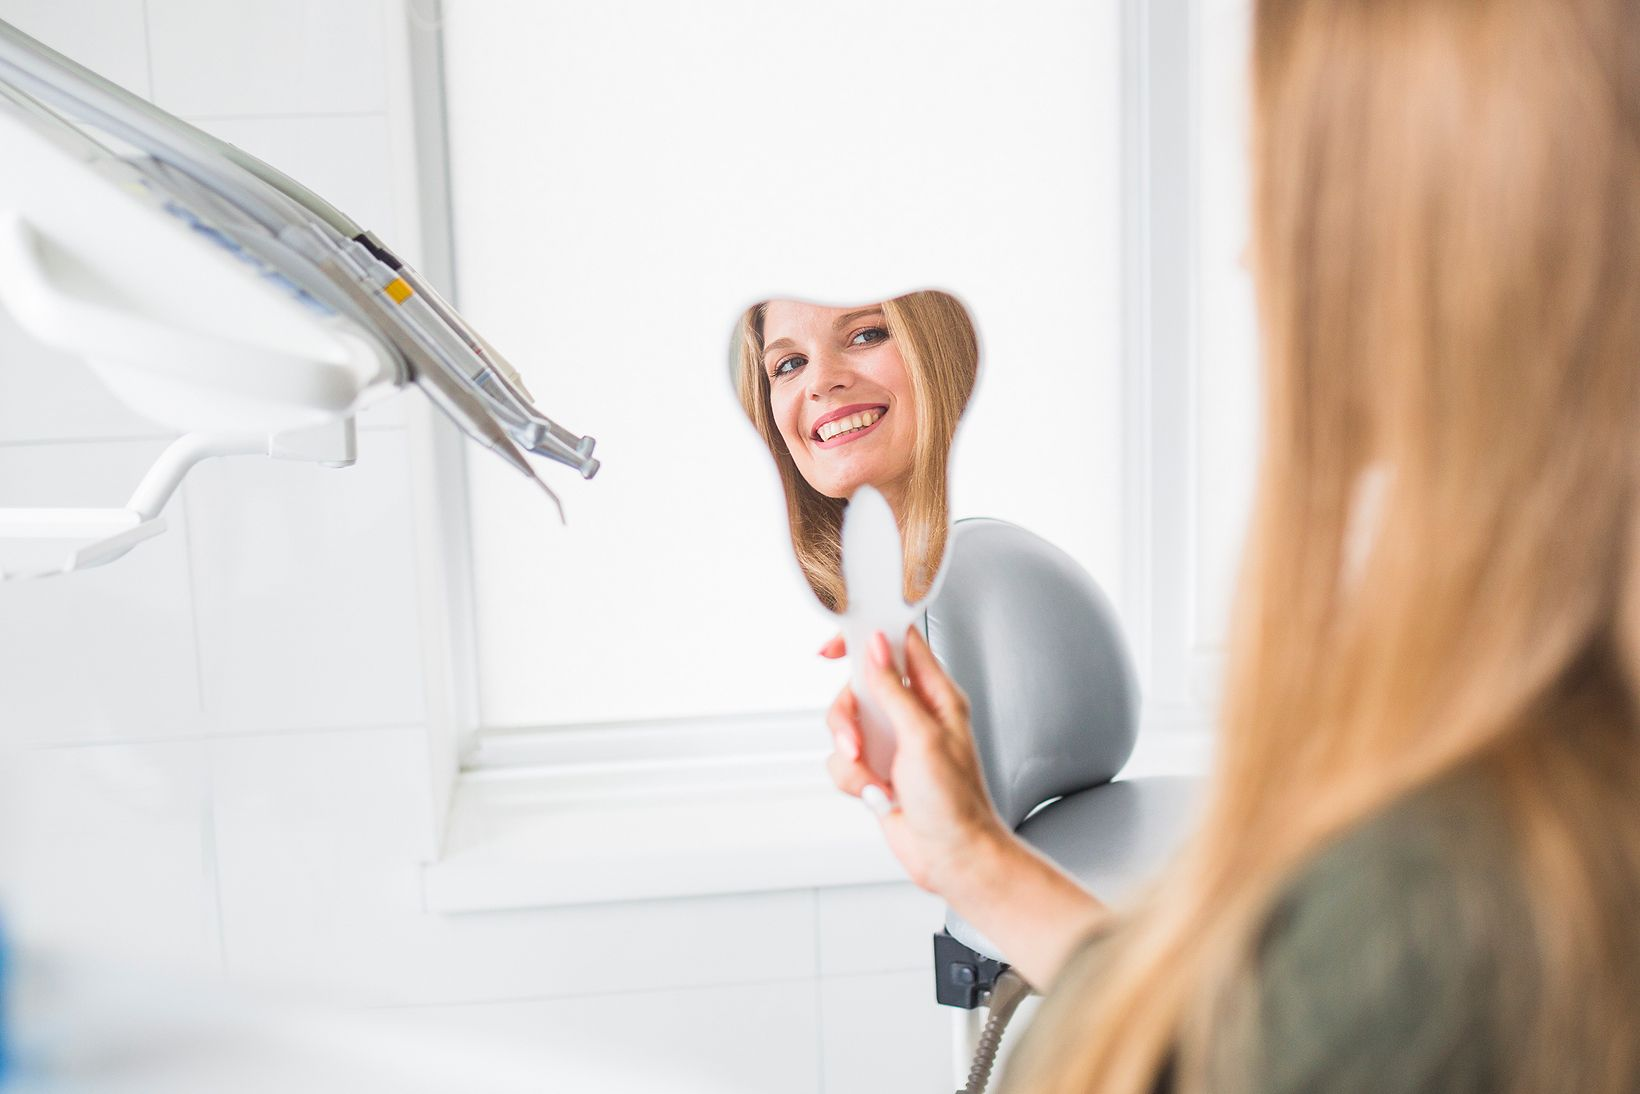 Keep your Teeth Healthy with these Tips from our Dentist